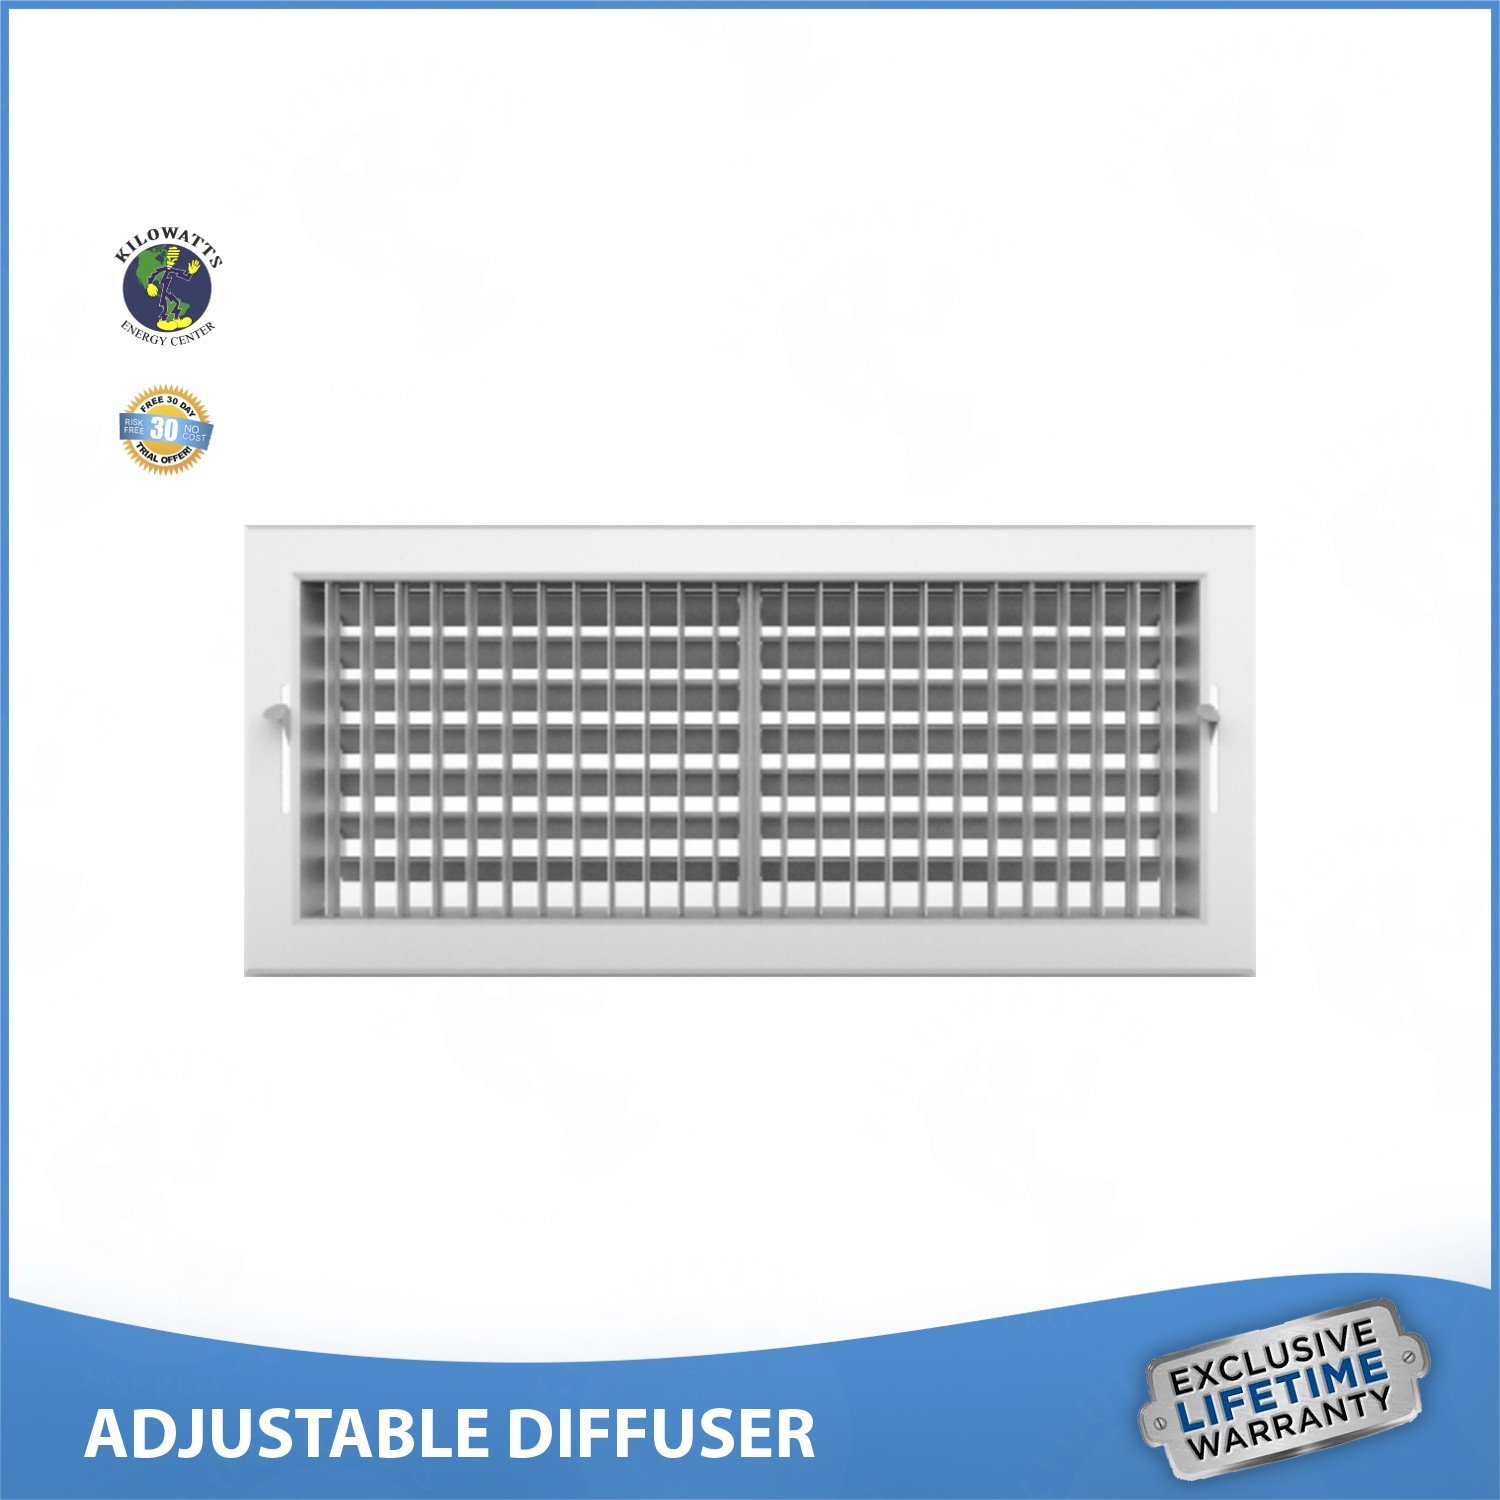 22''w x 10''h ADJUSTABLE DIFFUSER - Vent Duct Cover - Grille Register - Sidewall or Ceiling - High Airflow